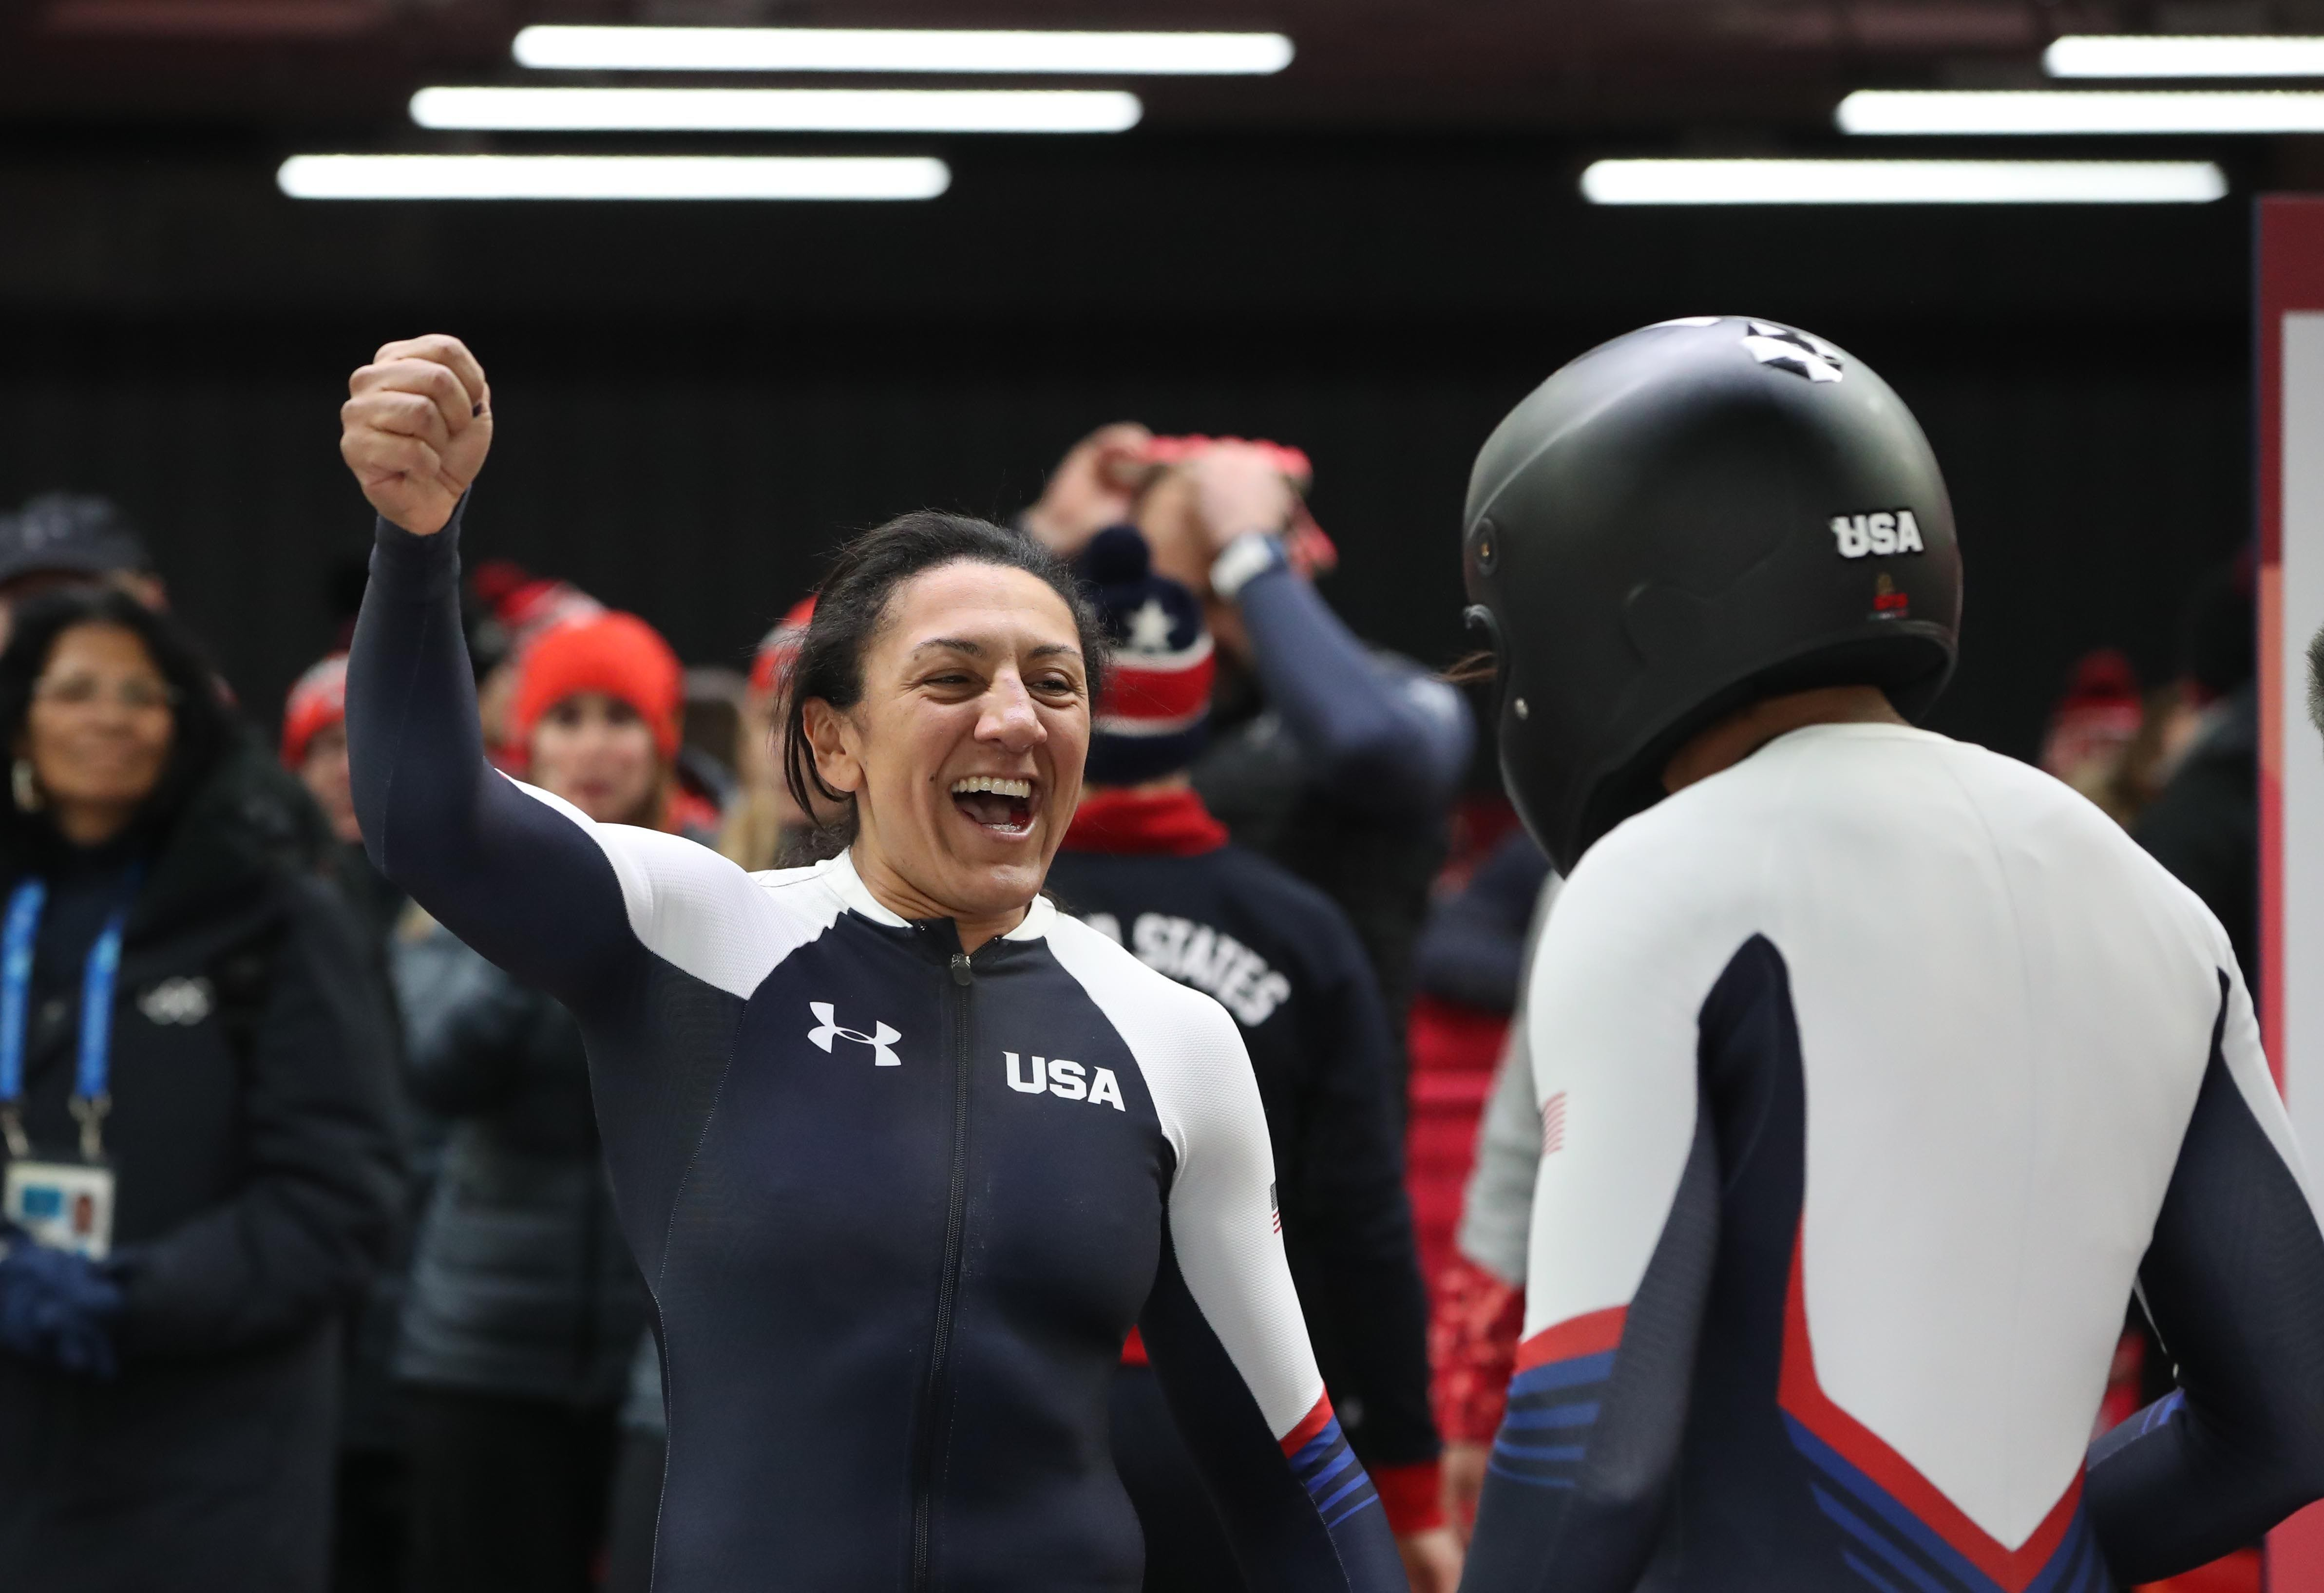 Olympic medalist Elana Meyers Taylor gets emotional discussing loss of teammate Steven Holcomb